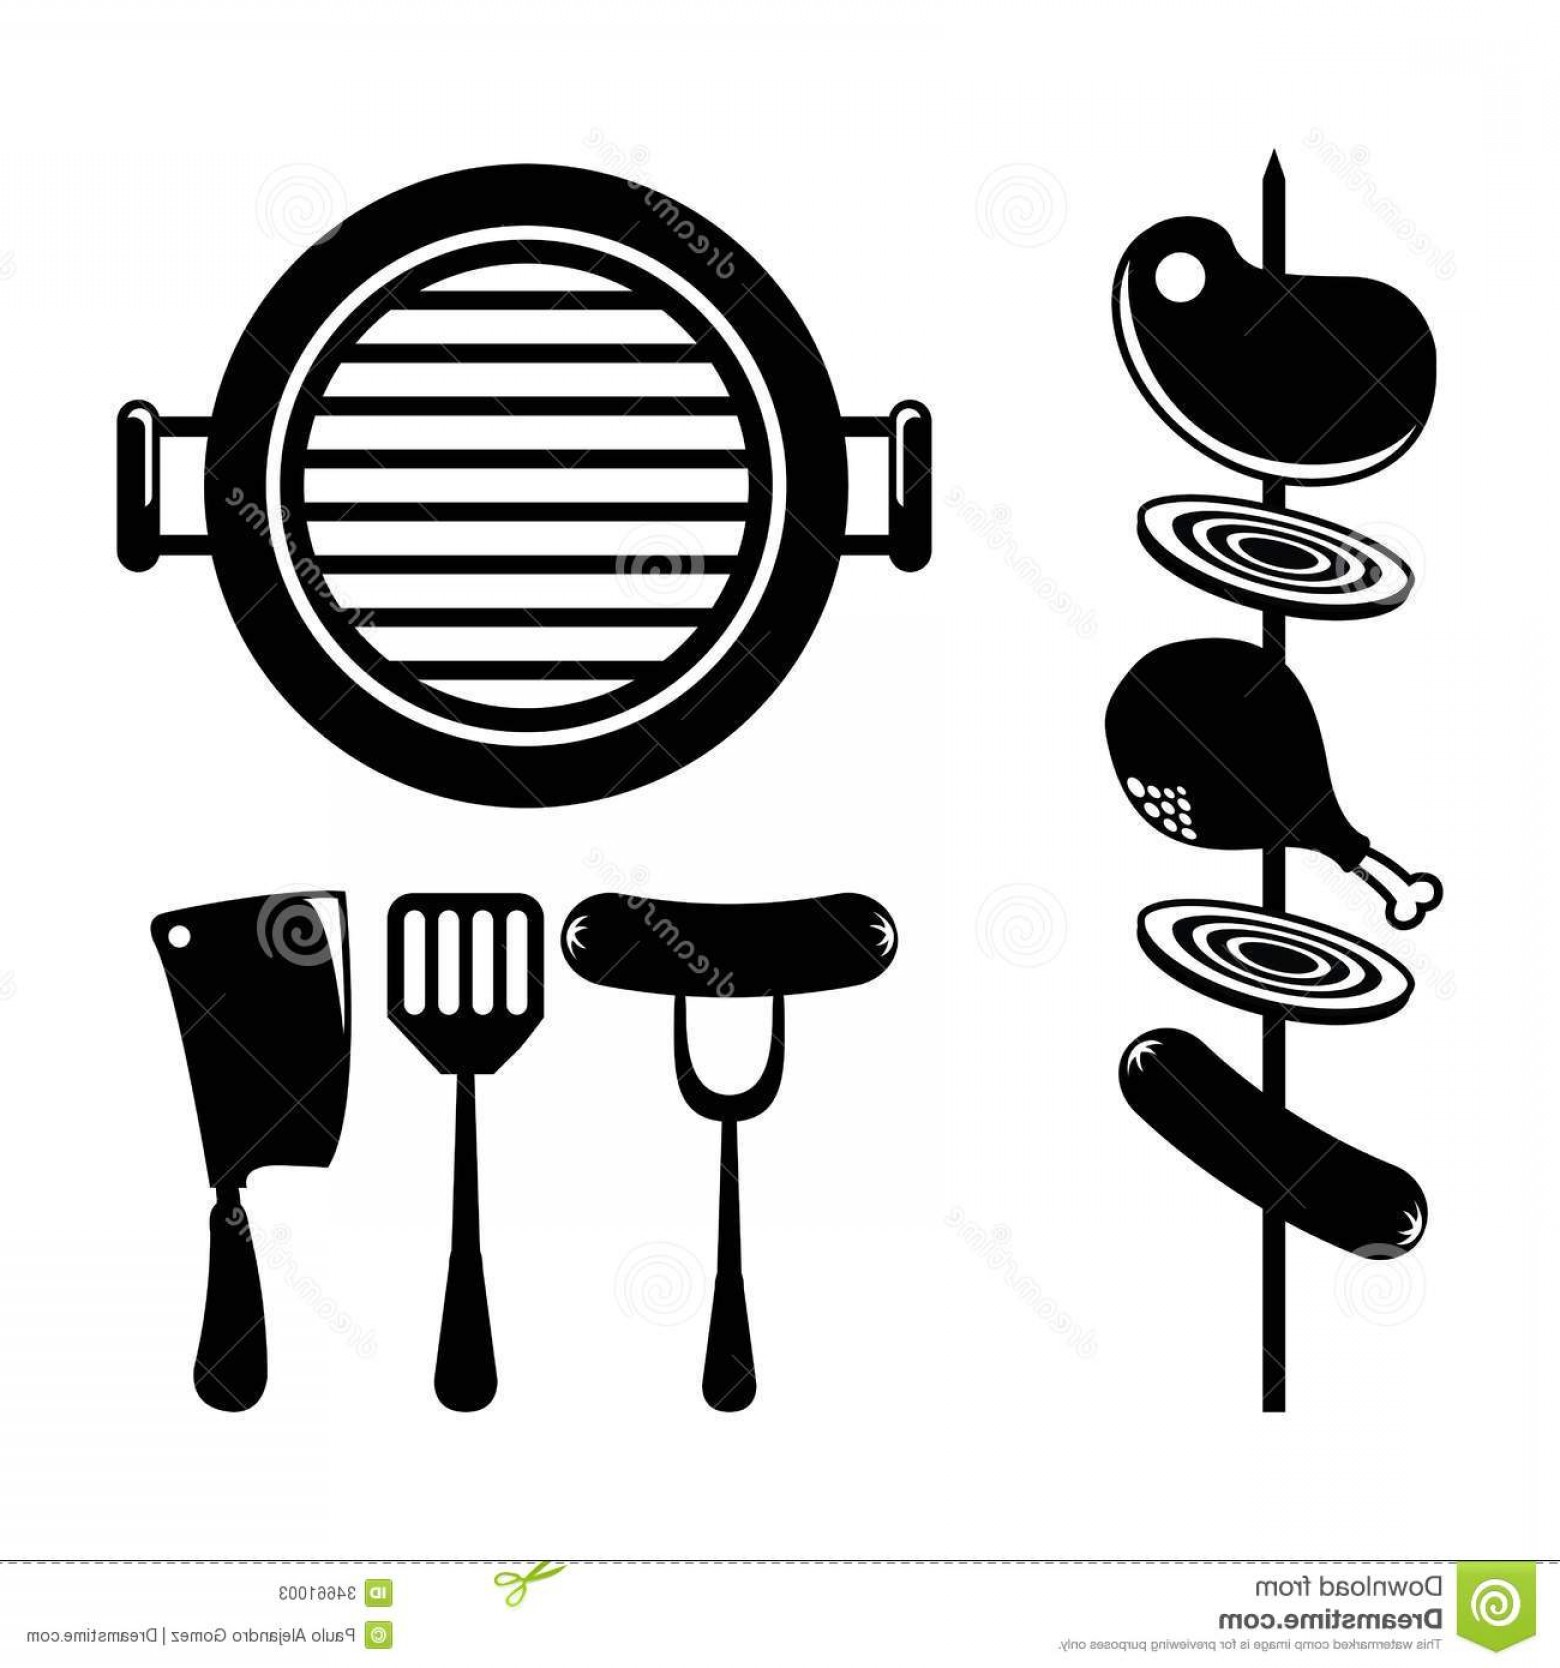 BBQ Grill Vector Black And White: Stock Photos Bbq Design Over White Background Vector Illustration Image